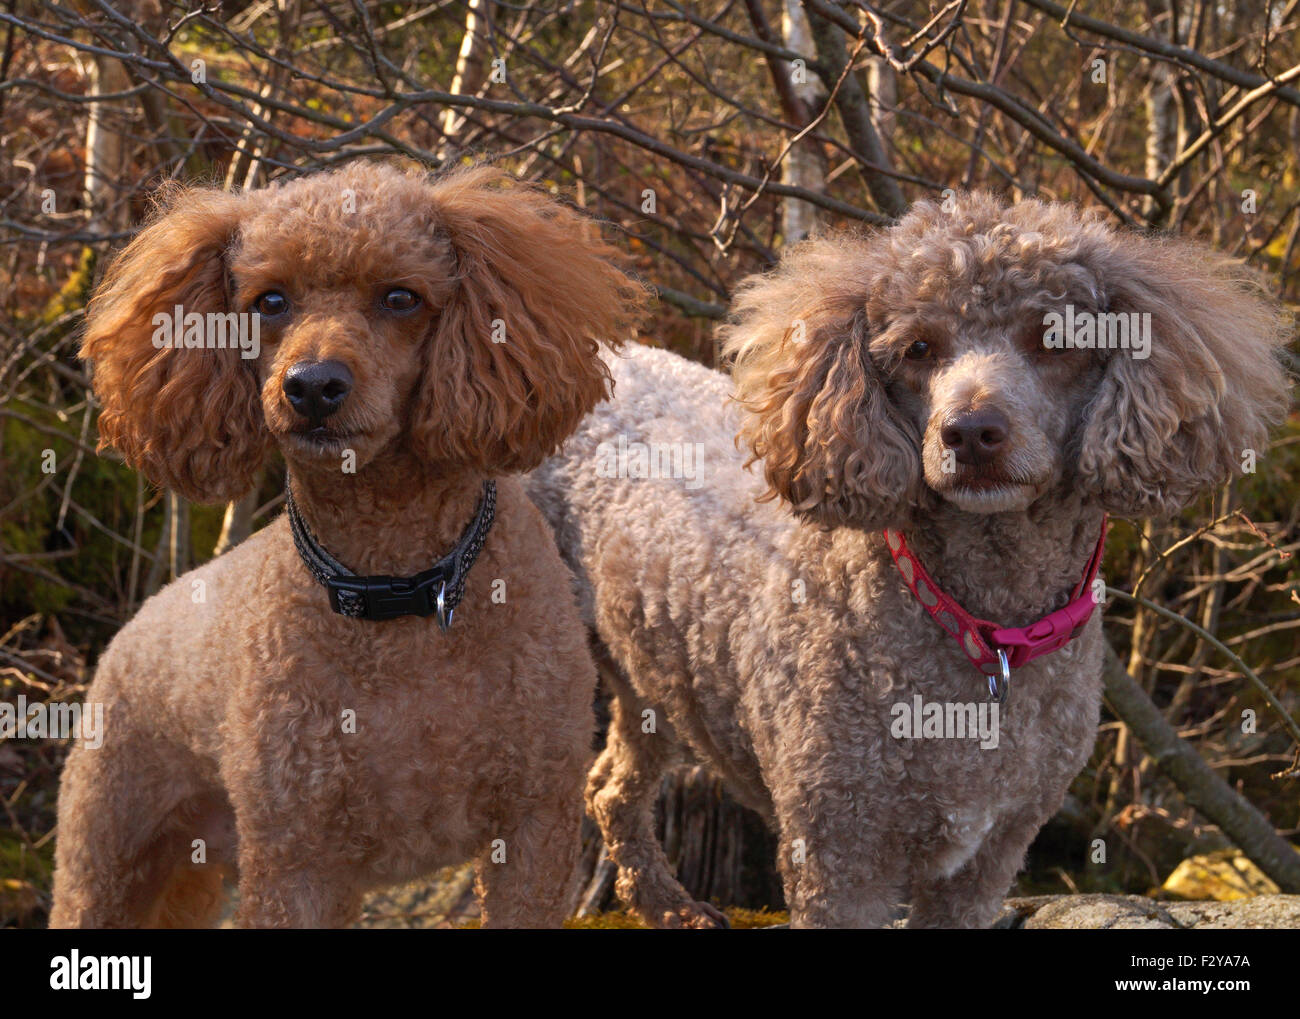 Red and Brown Toy / Miniature Poodles with fluffy ears on the Rocks at Loch Lomond - Stock Image